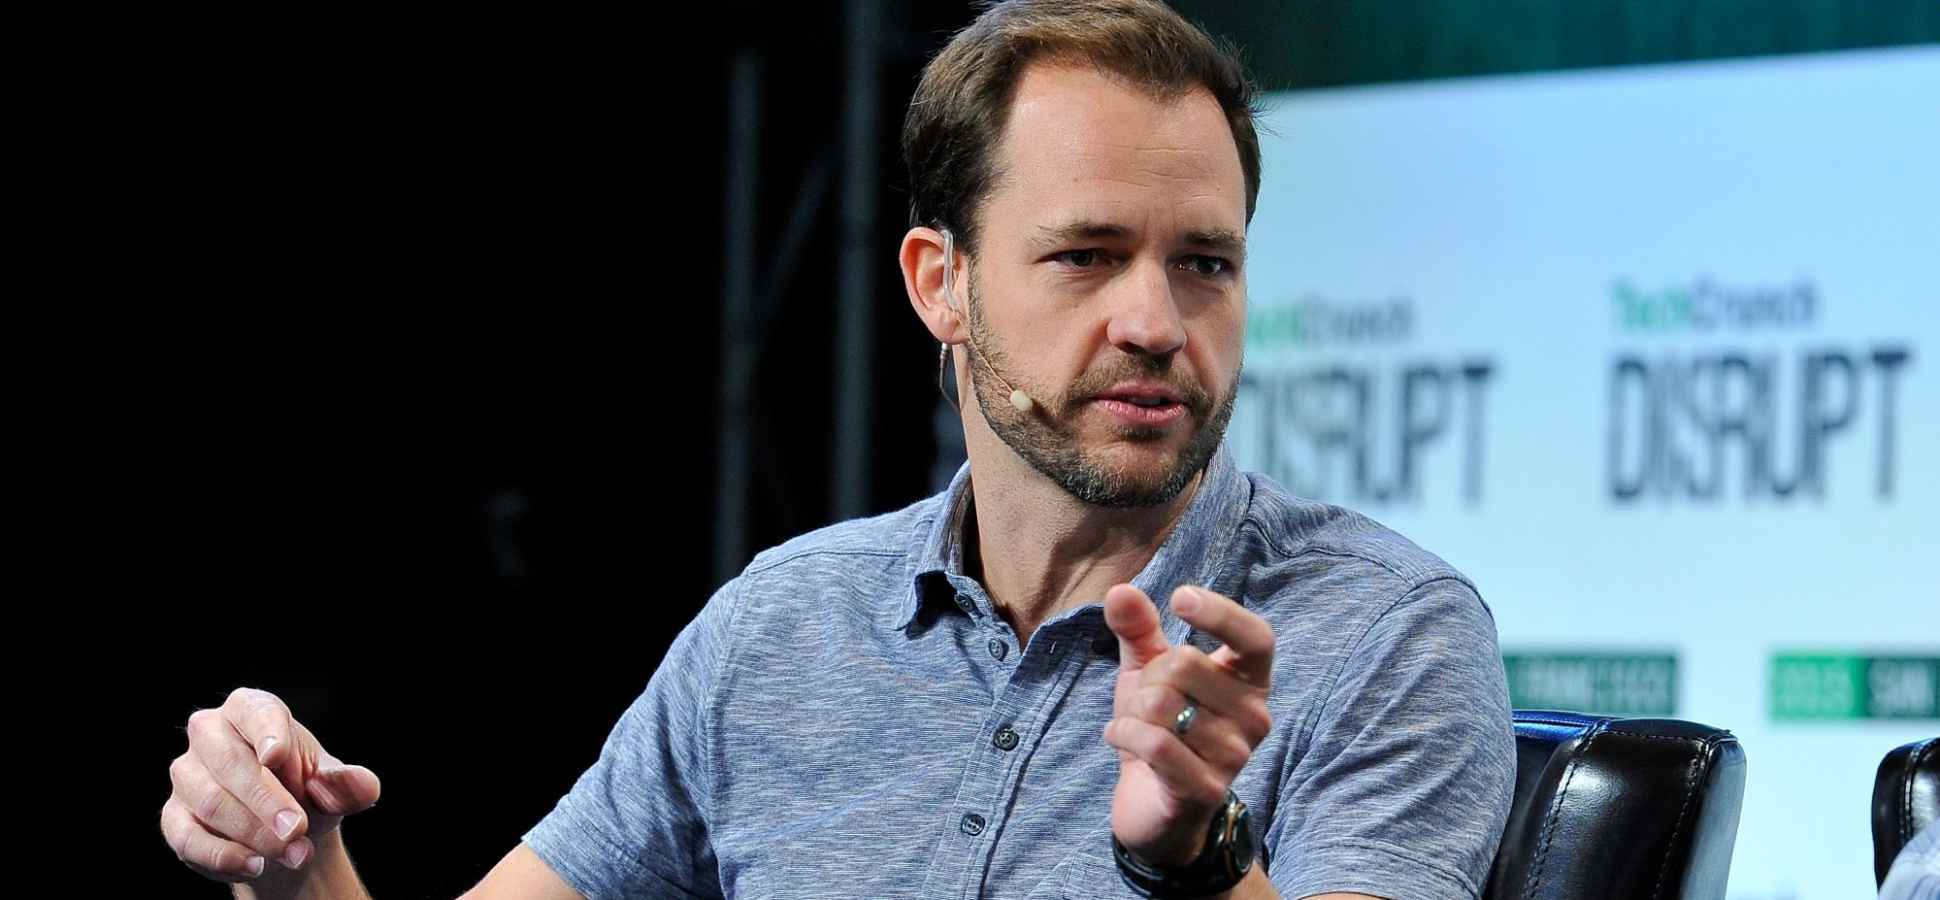 Want a Billion Dollar Startup? Try These Industries, Says VC who Bet on Dropbox and TuneIn